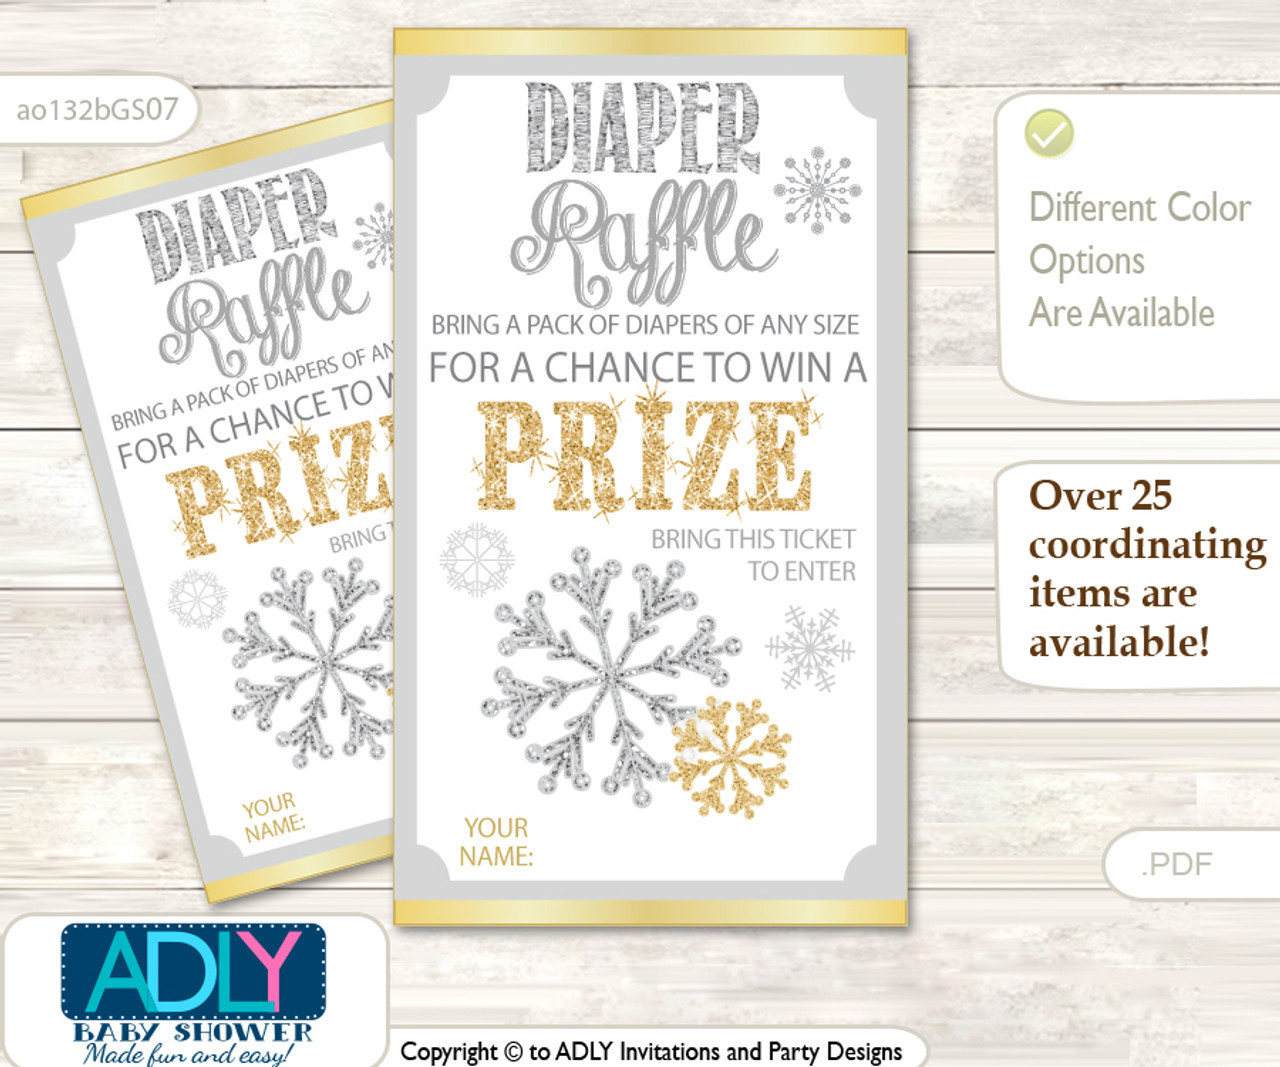 photo about Printable Tickets known as Impartial Snowflake Diaper Raffle Printable Tickets for Little one Shower, Gold, Gray